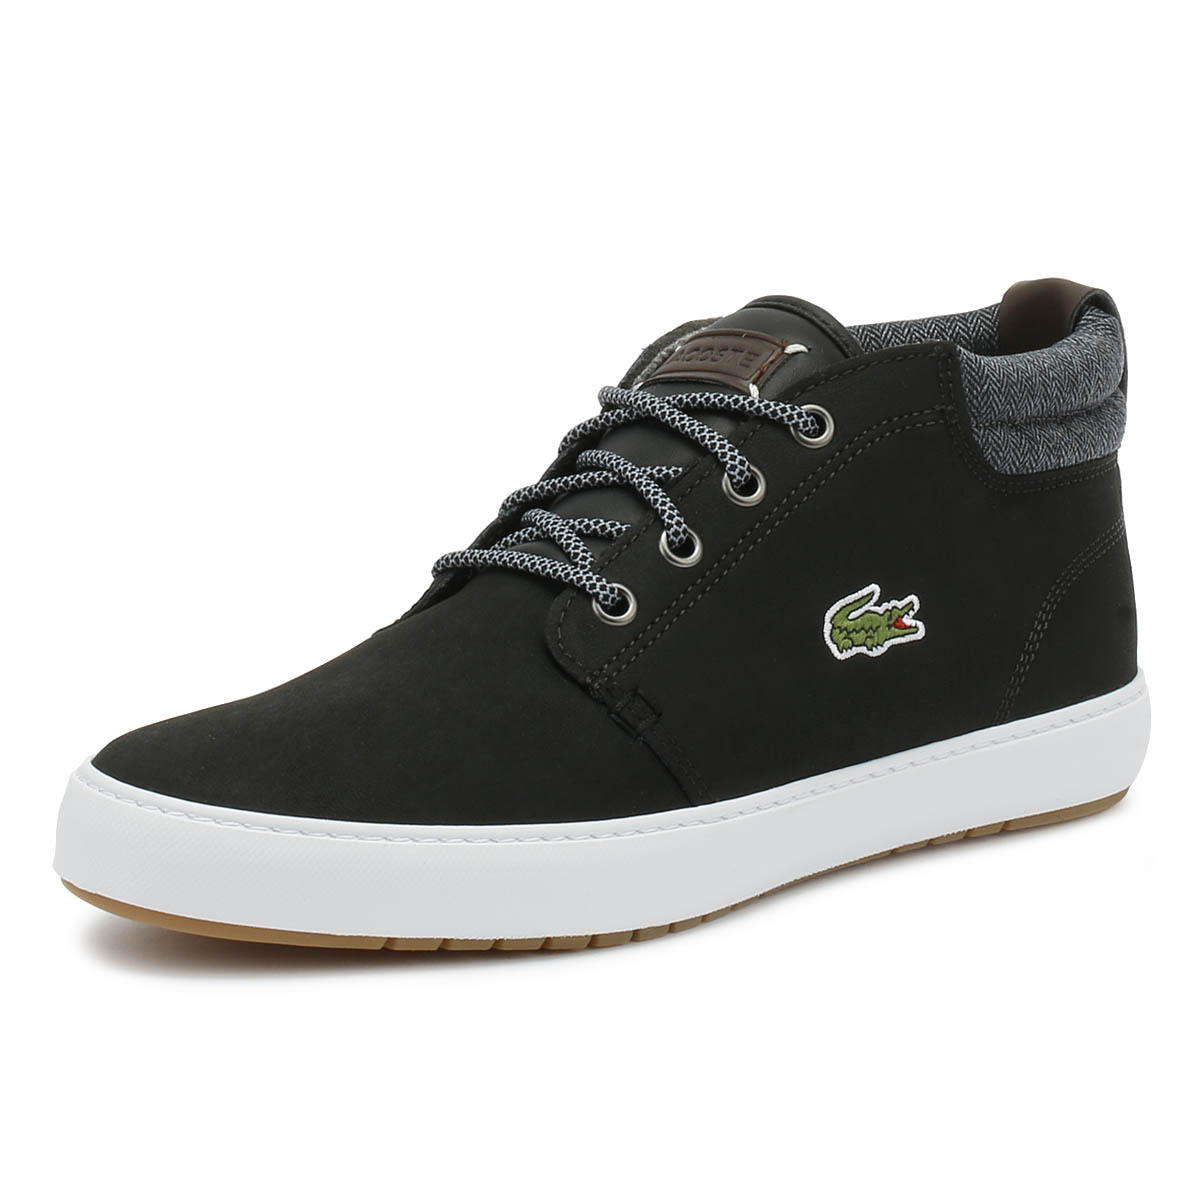 859a9f9d5 Details about Lacoste Mens Trainers Ampthill Terra 318 1 Black   Grey Sport  Casual Shoes